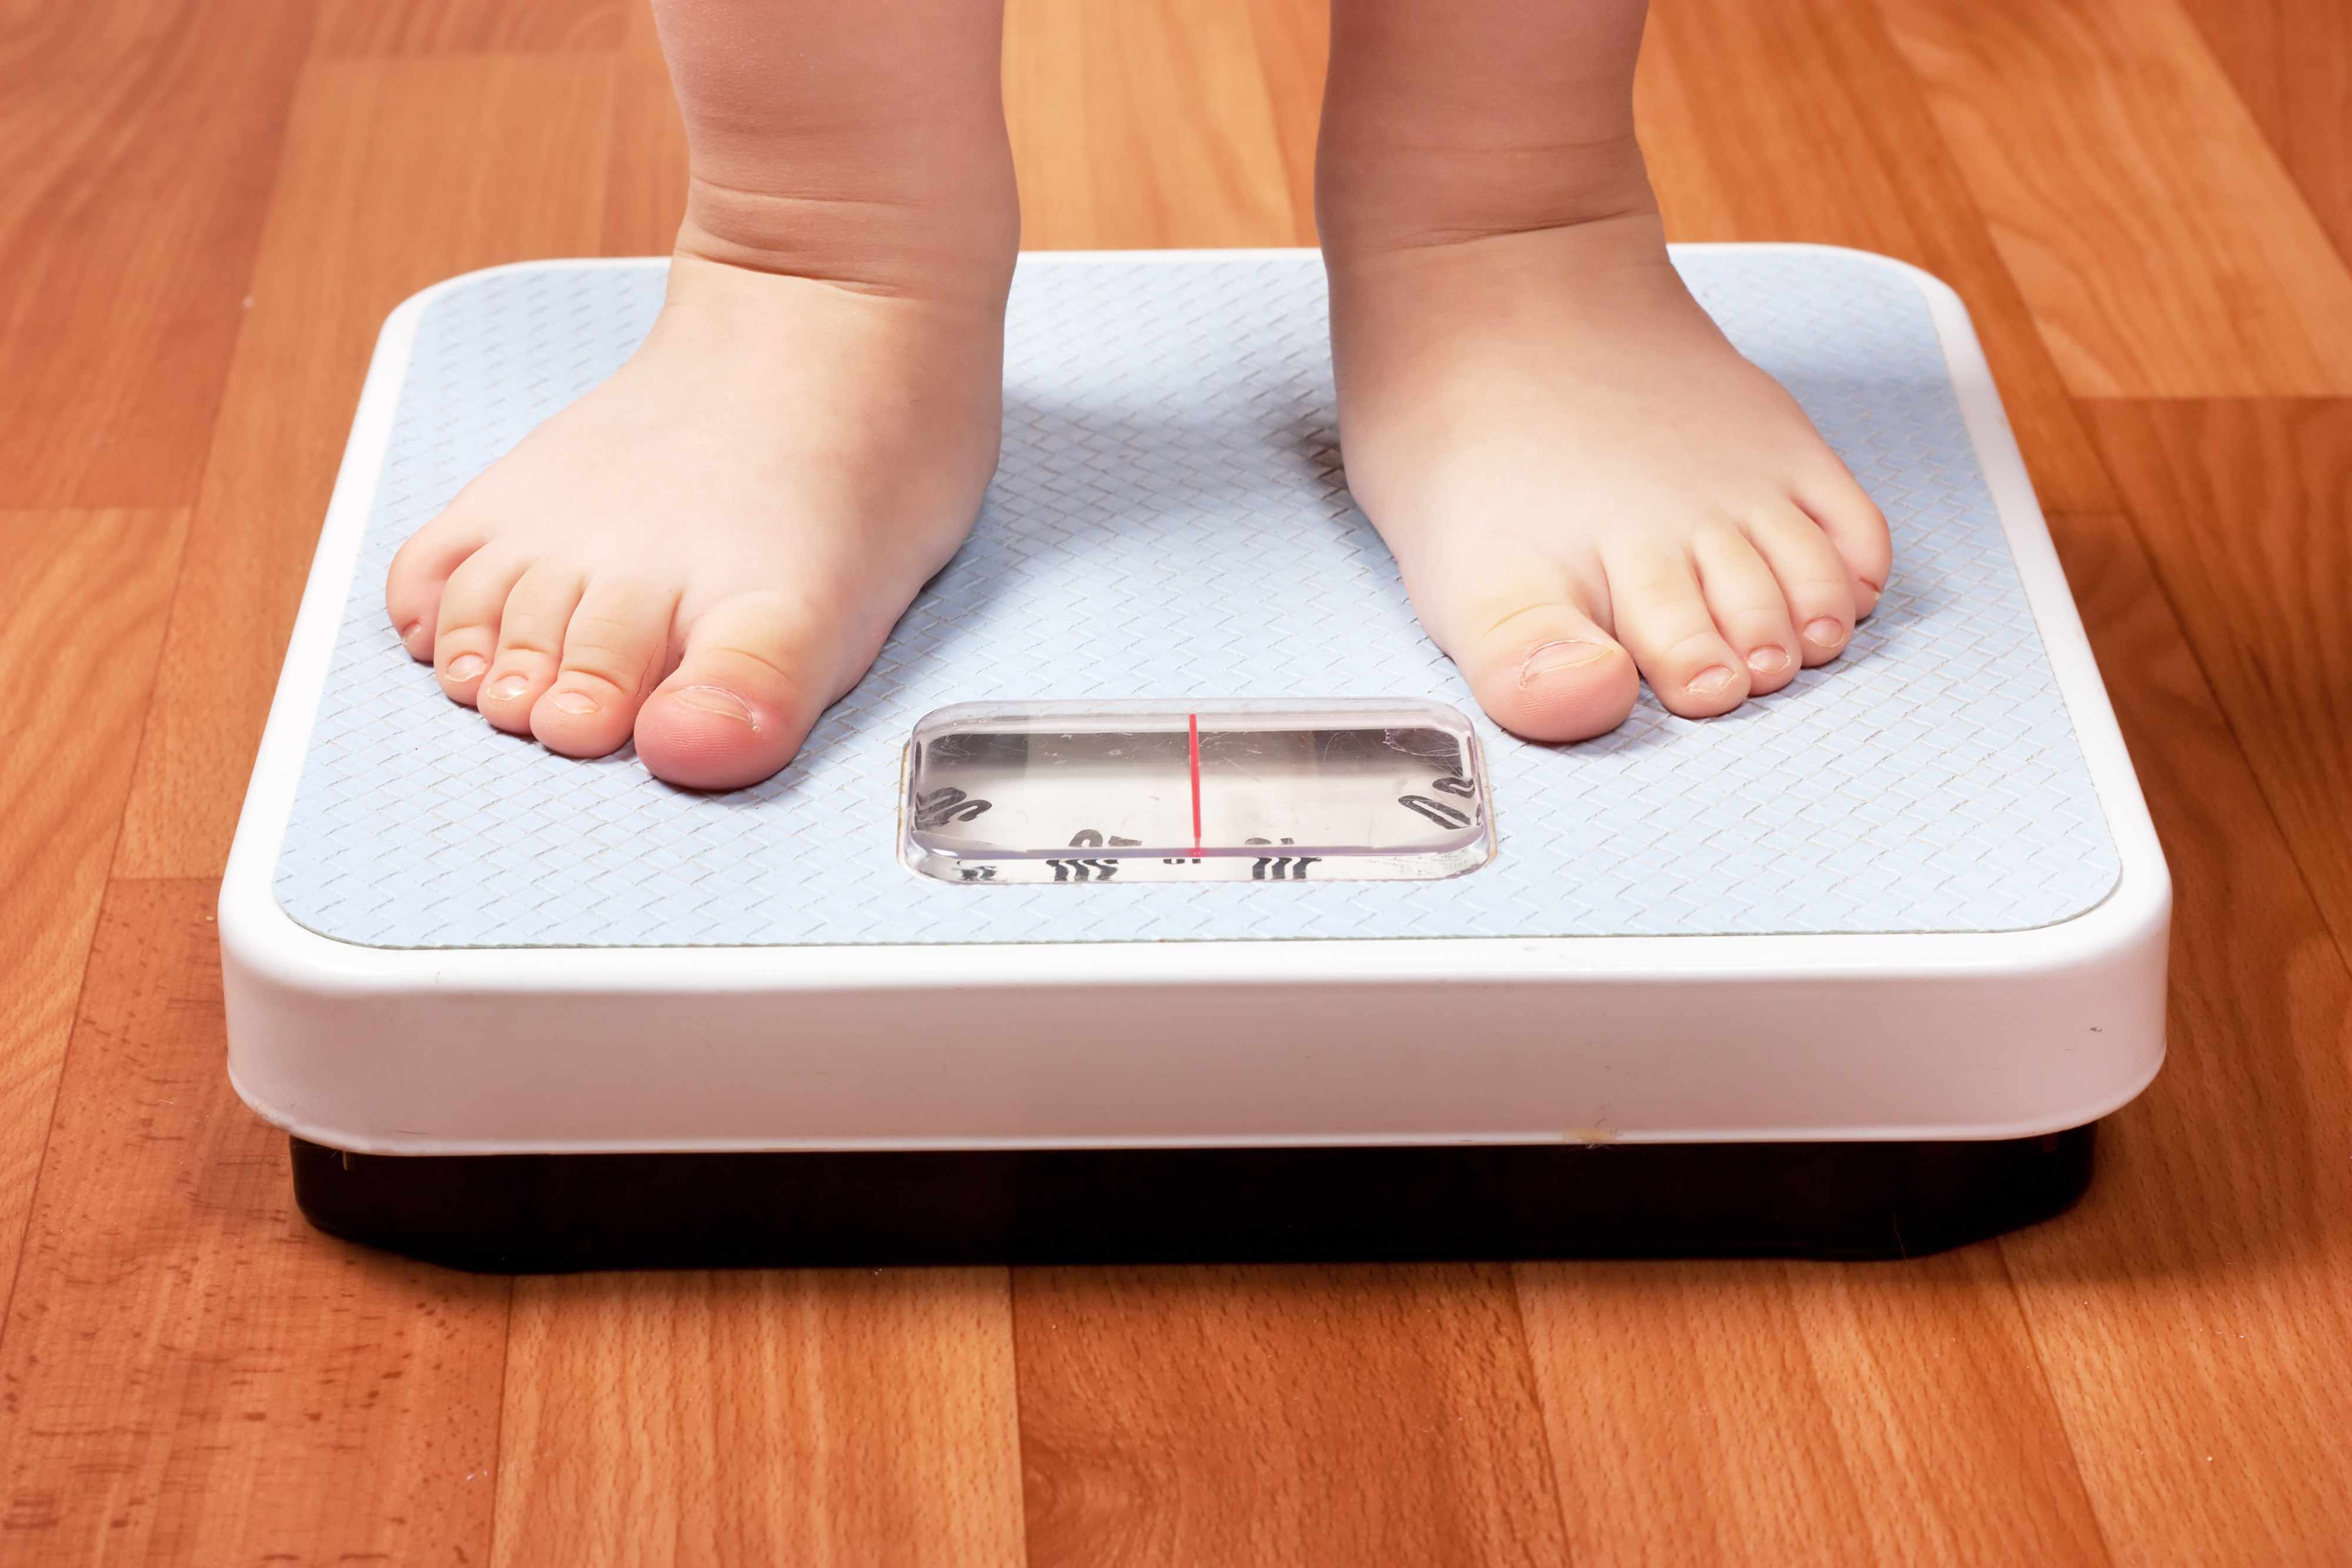 child's feet on a scale obesity